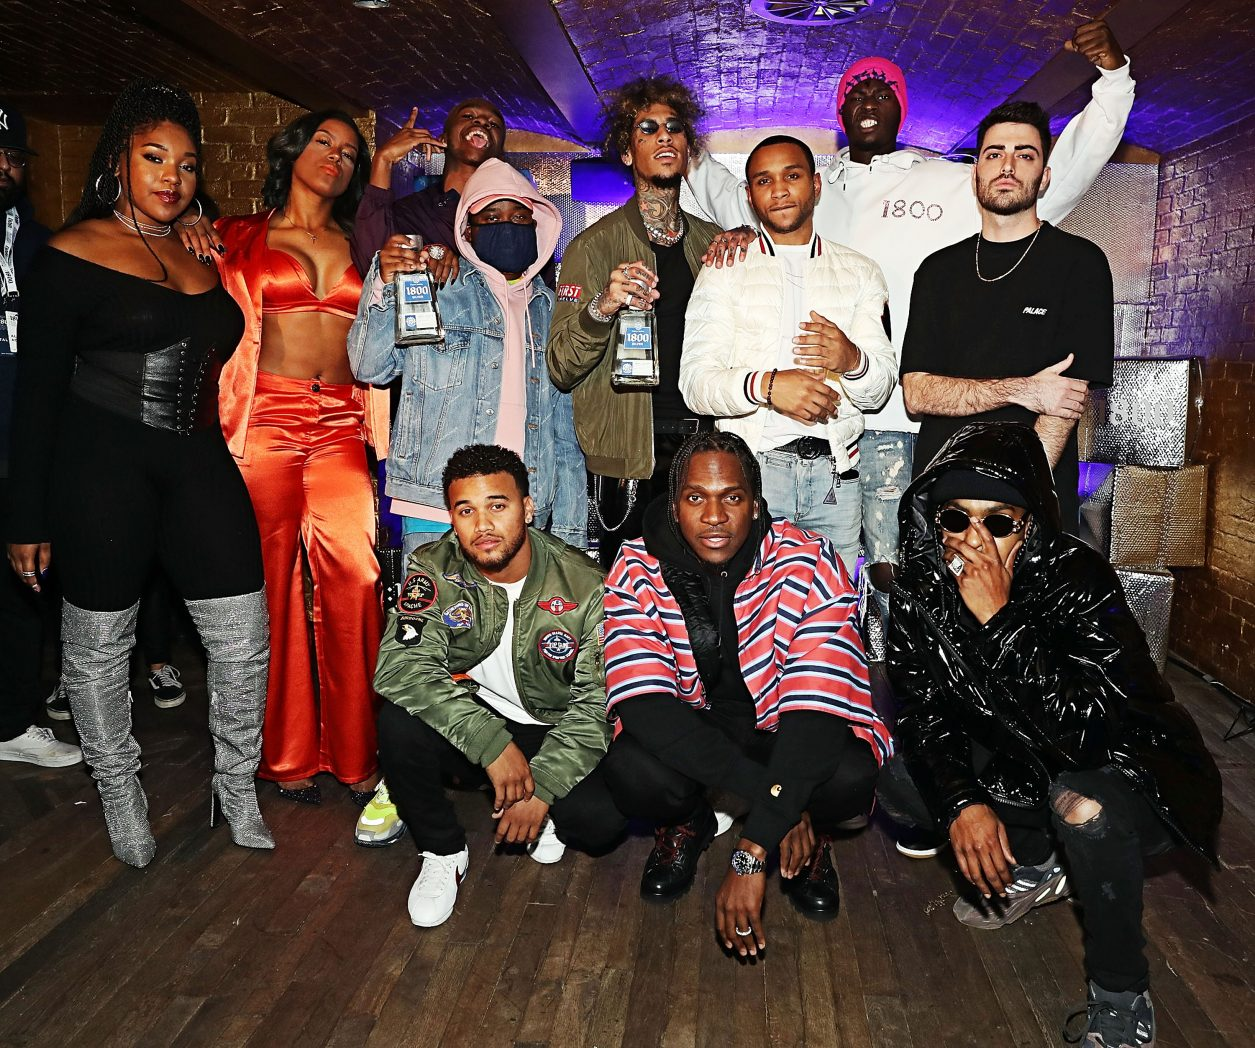 "NEW YORK, NY - DECEMBER 05:  Ant White, Cartel Count Up, Don Zio P, Hass Irv, Monalyse, Nita Jonez, Sam Austins, T Got Bank, Trevor Lanier, Tyler Thomas and Pusha-T attend Pusha-T and 1800 Tequila ""1800 Seconds"" Compilation Album Celebration Concert at Sony Hall on December 5, 2018 in New York City.  (Photo by Shareif Ziyadat/Getty Images) *** Local Caption *** Ant White; Cartel Count Up; Don Zio P; Hass Irv; Monalyse; Nita Jonez; Sam Austins; T Got Bank; Trevor Lanier; Tyler Thomas; Pusha-T"